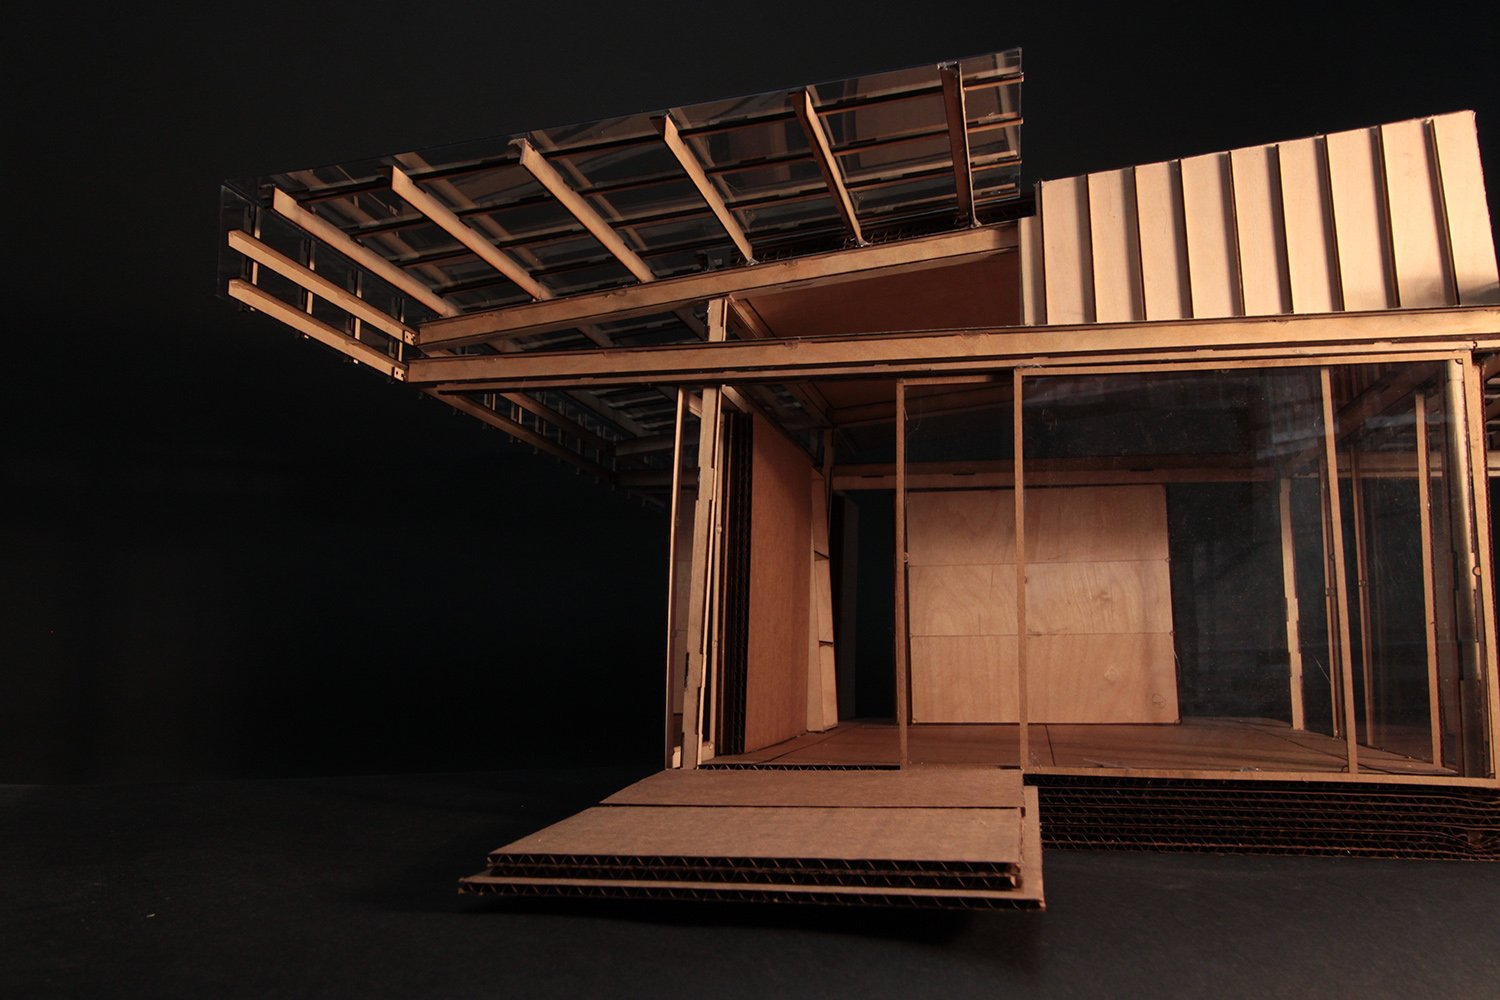 Design process model in wood and cardboard, detail of umbrella roof structure. Anderson Anderson Architecture}